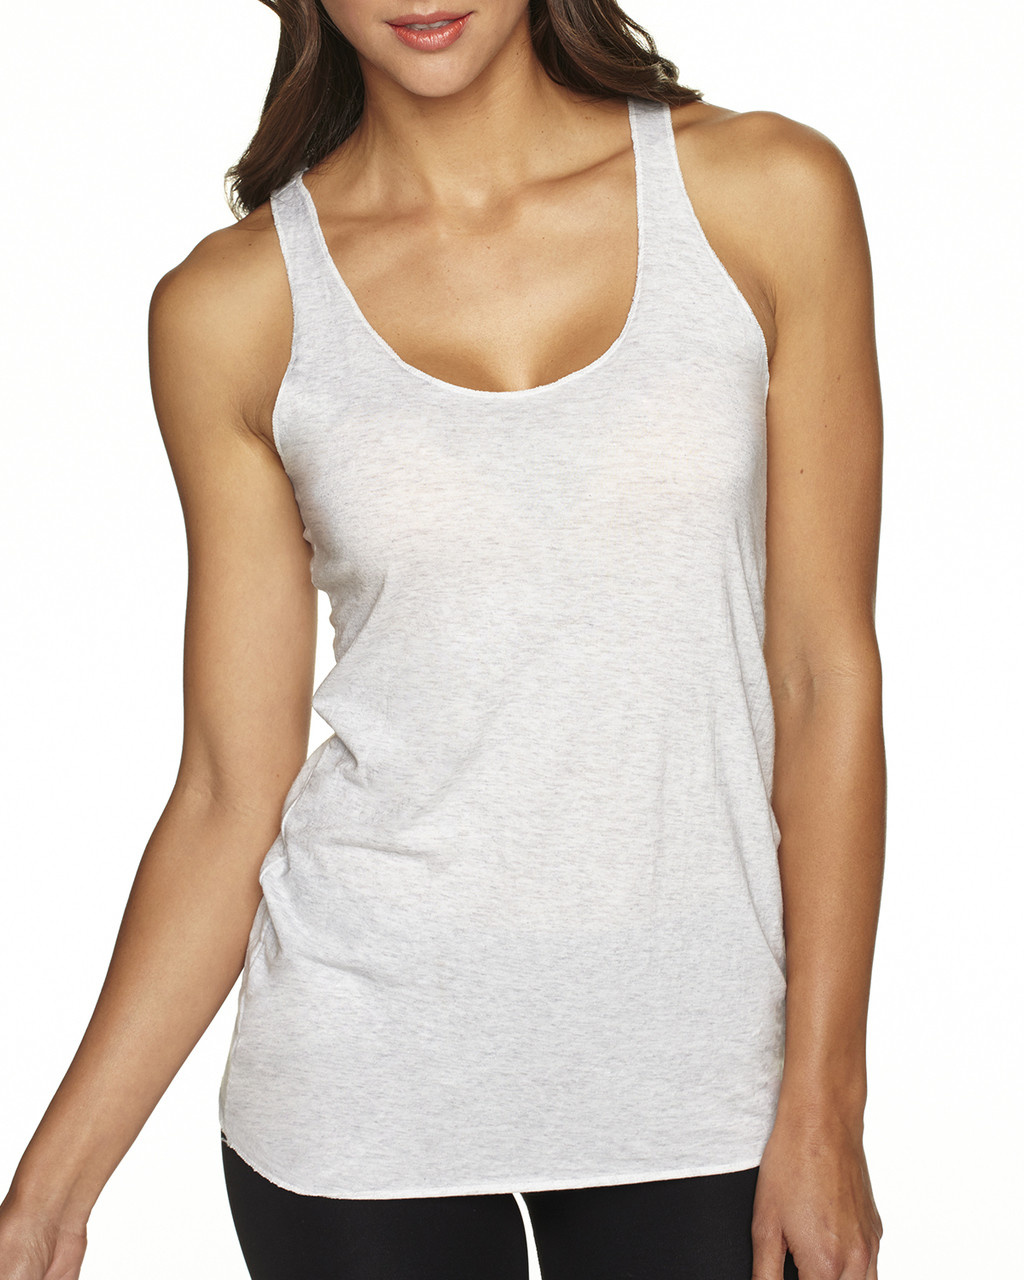 Heather White - 6733 Next Level Tri-Blend Racerback Tank Top | Blankclothing.ca